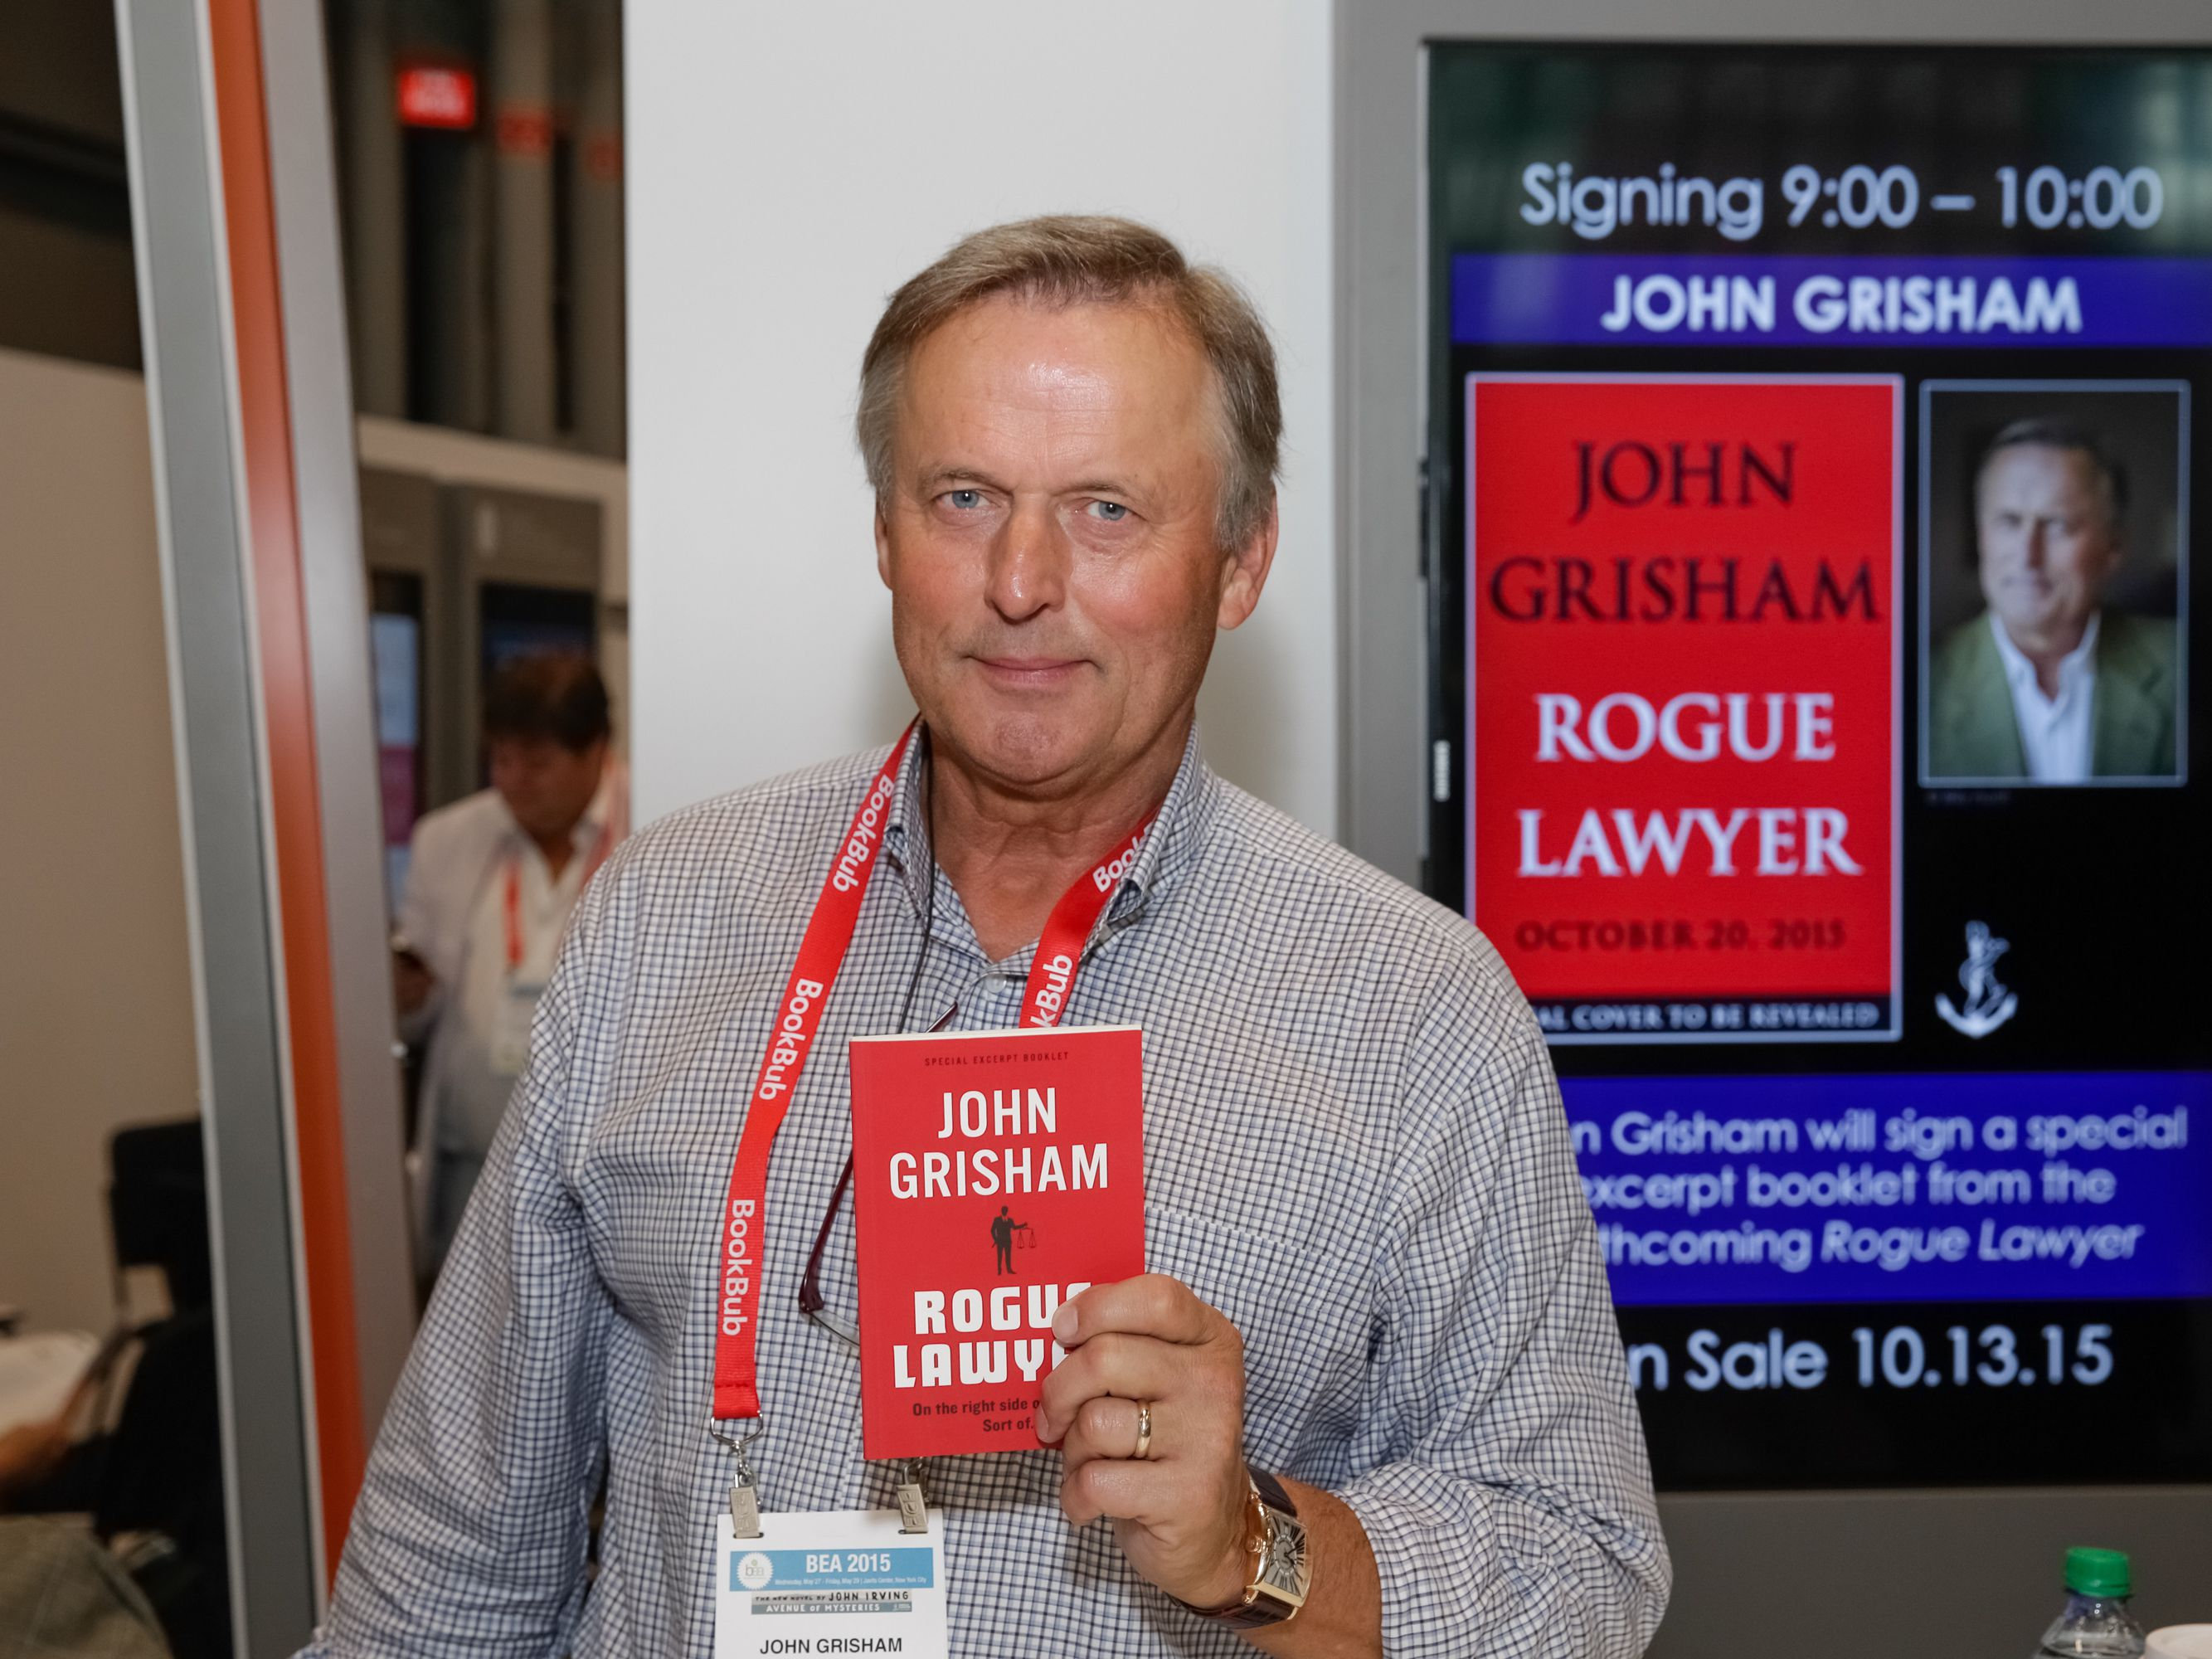 A Complete List of John Grisham Books